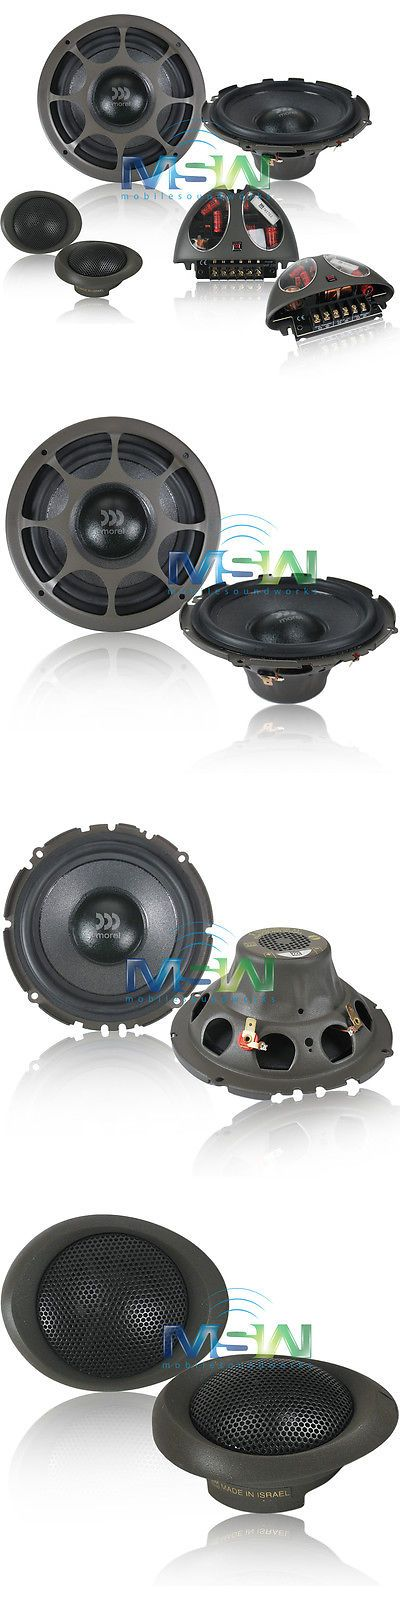 Car Speakers and Speaker Systems: Authentic Morel® Virtus 602 6-1 2 2-Way Car Component Speaker System 6.5 *New* -> BUY IT NOW ONLY: $549 on eBay!